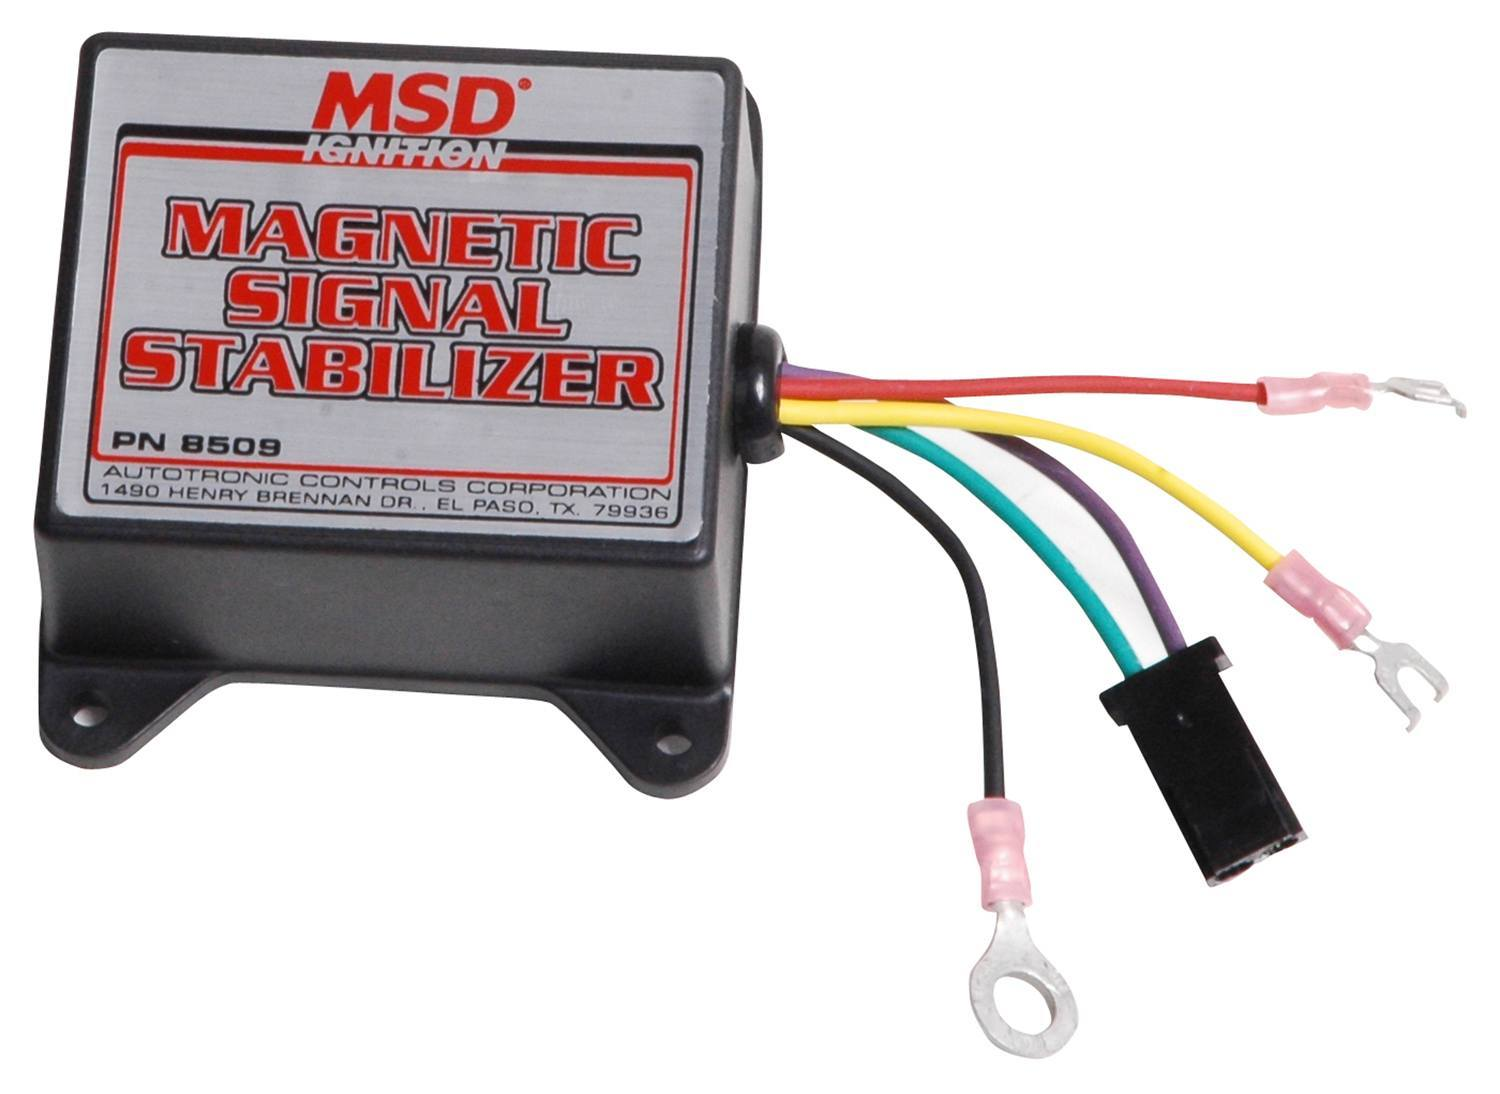 Msd Ignition Magnetic Signal Stabilizer